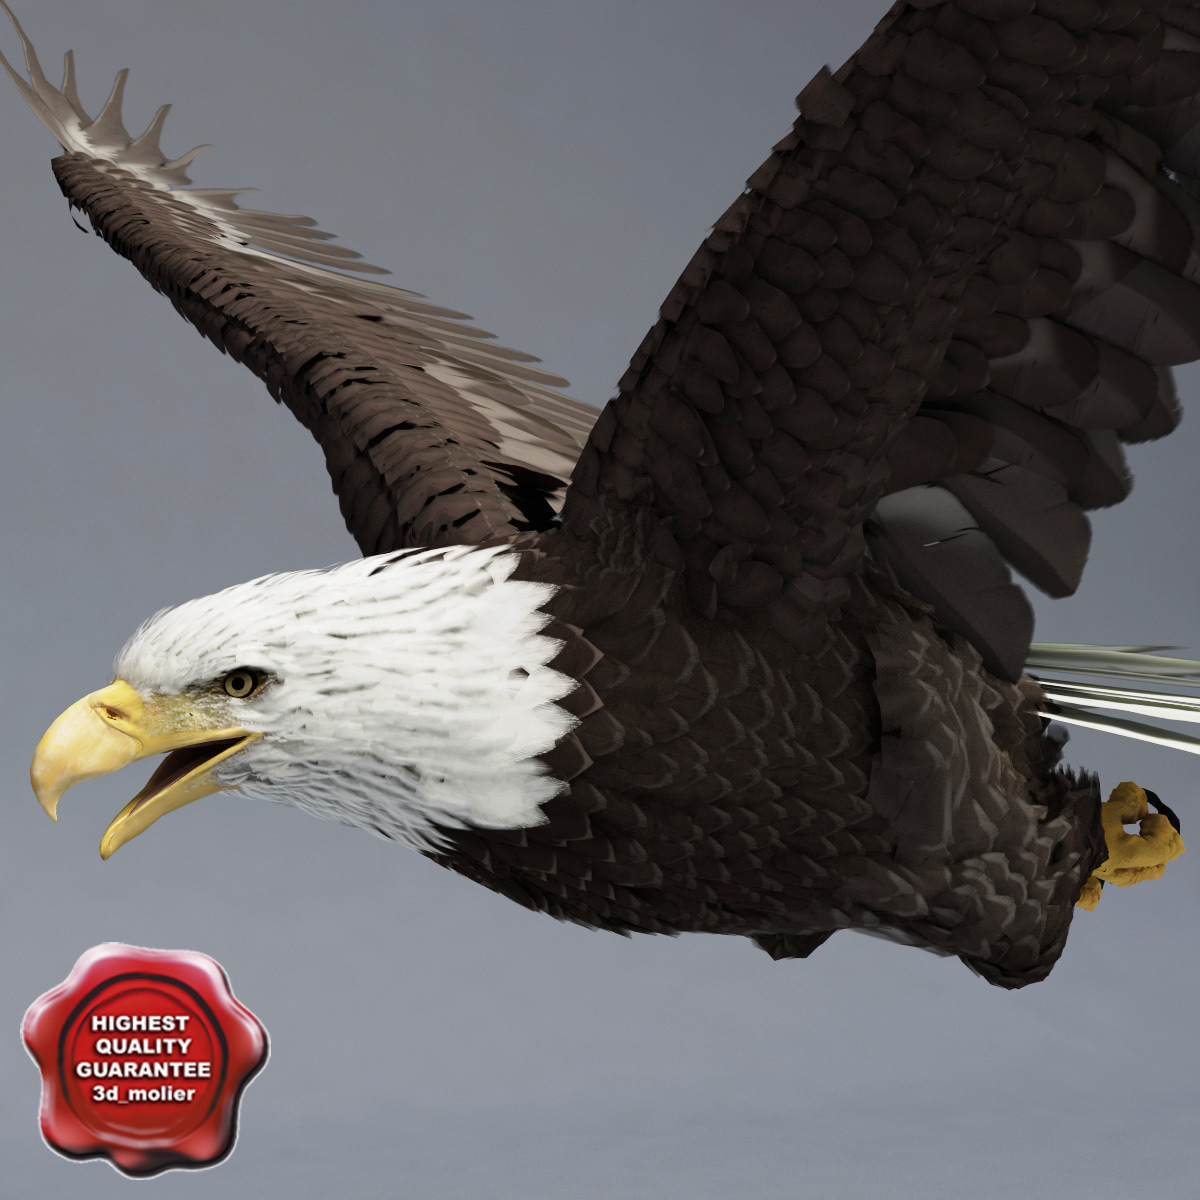 Bald_Eagle_Pose3_00.jpg